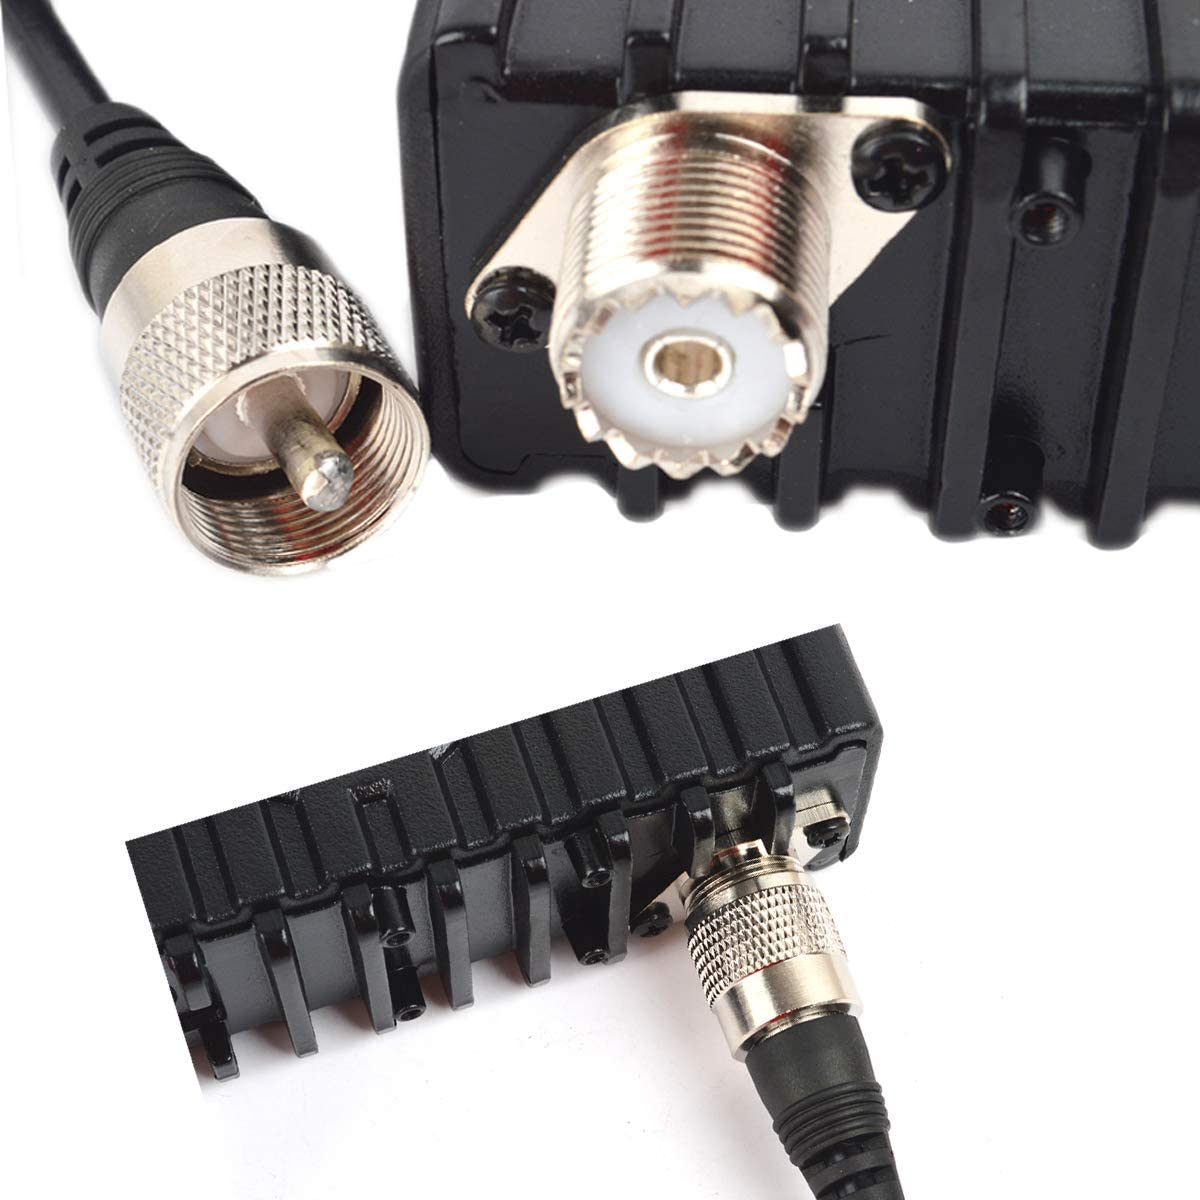 16.4ft HYS RG58 5 M Low Loss UHF SO239 Female to Male FM Transceiver Antenna Cable Coaxial PL259 Coax Connectors for Ham CB//VHF//UHF//HF Radio Antenna and UHF//VHF Mobile Radio